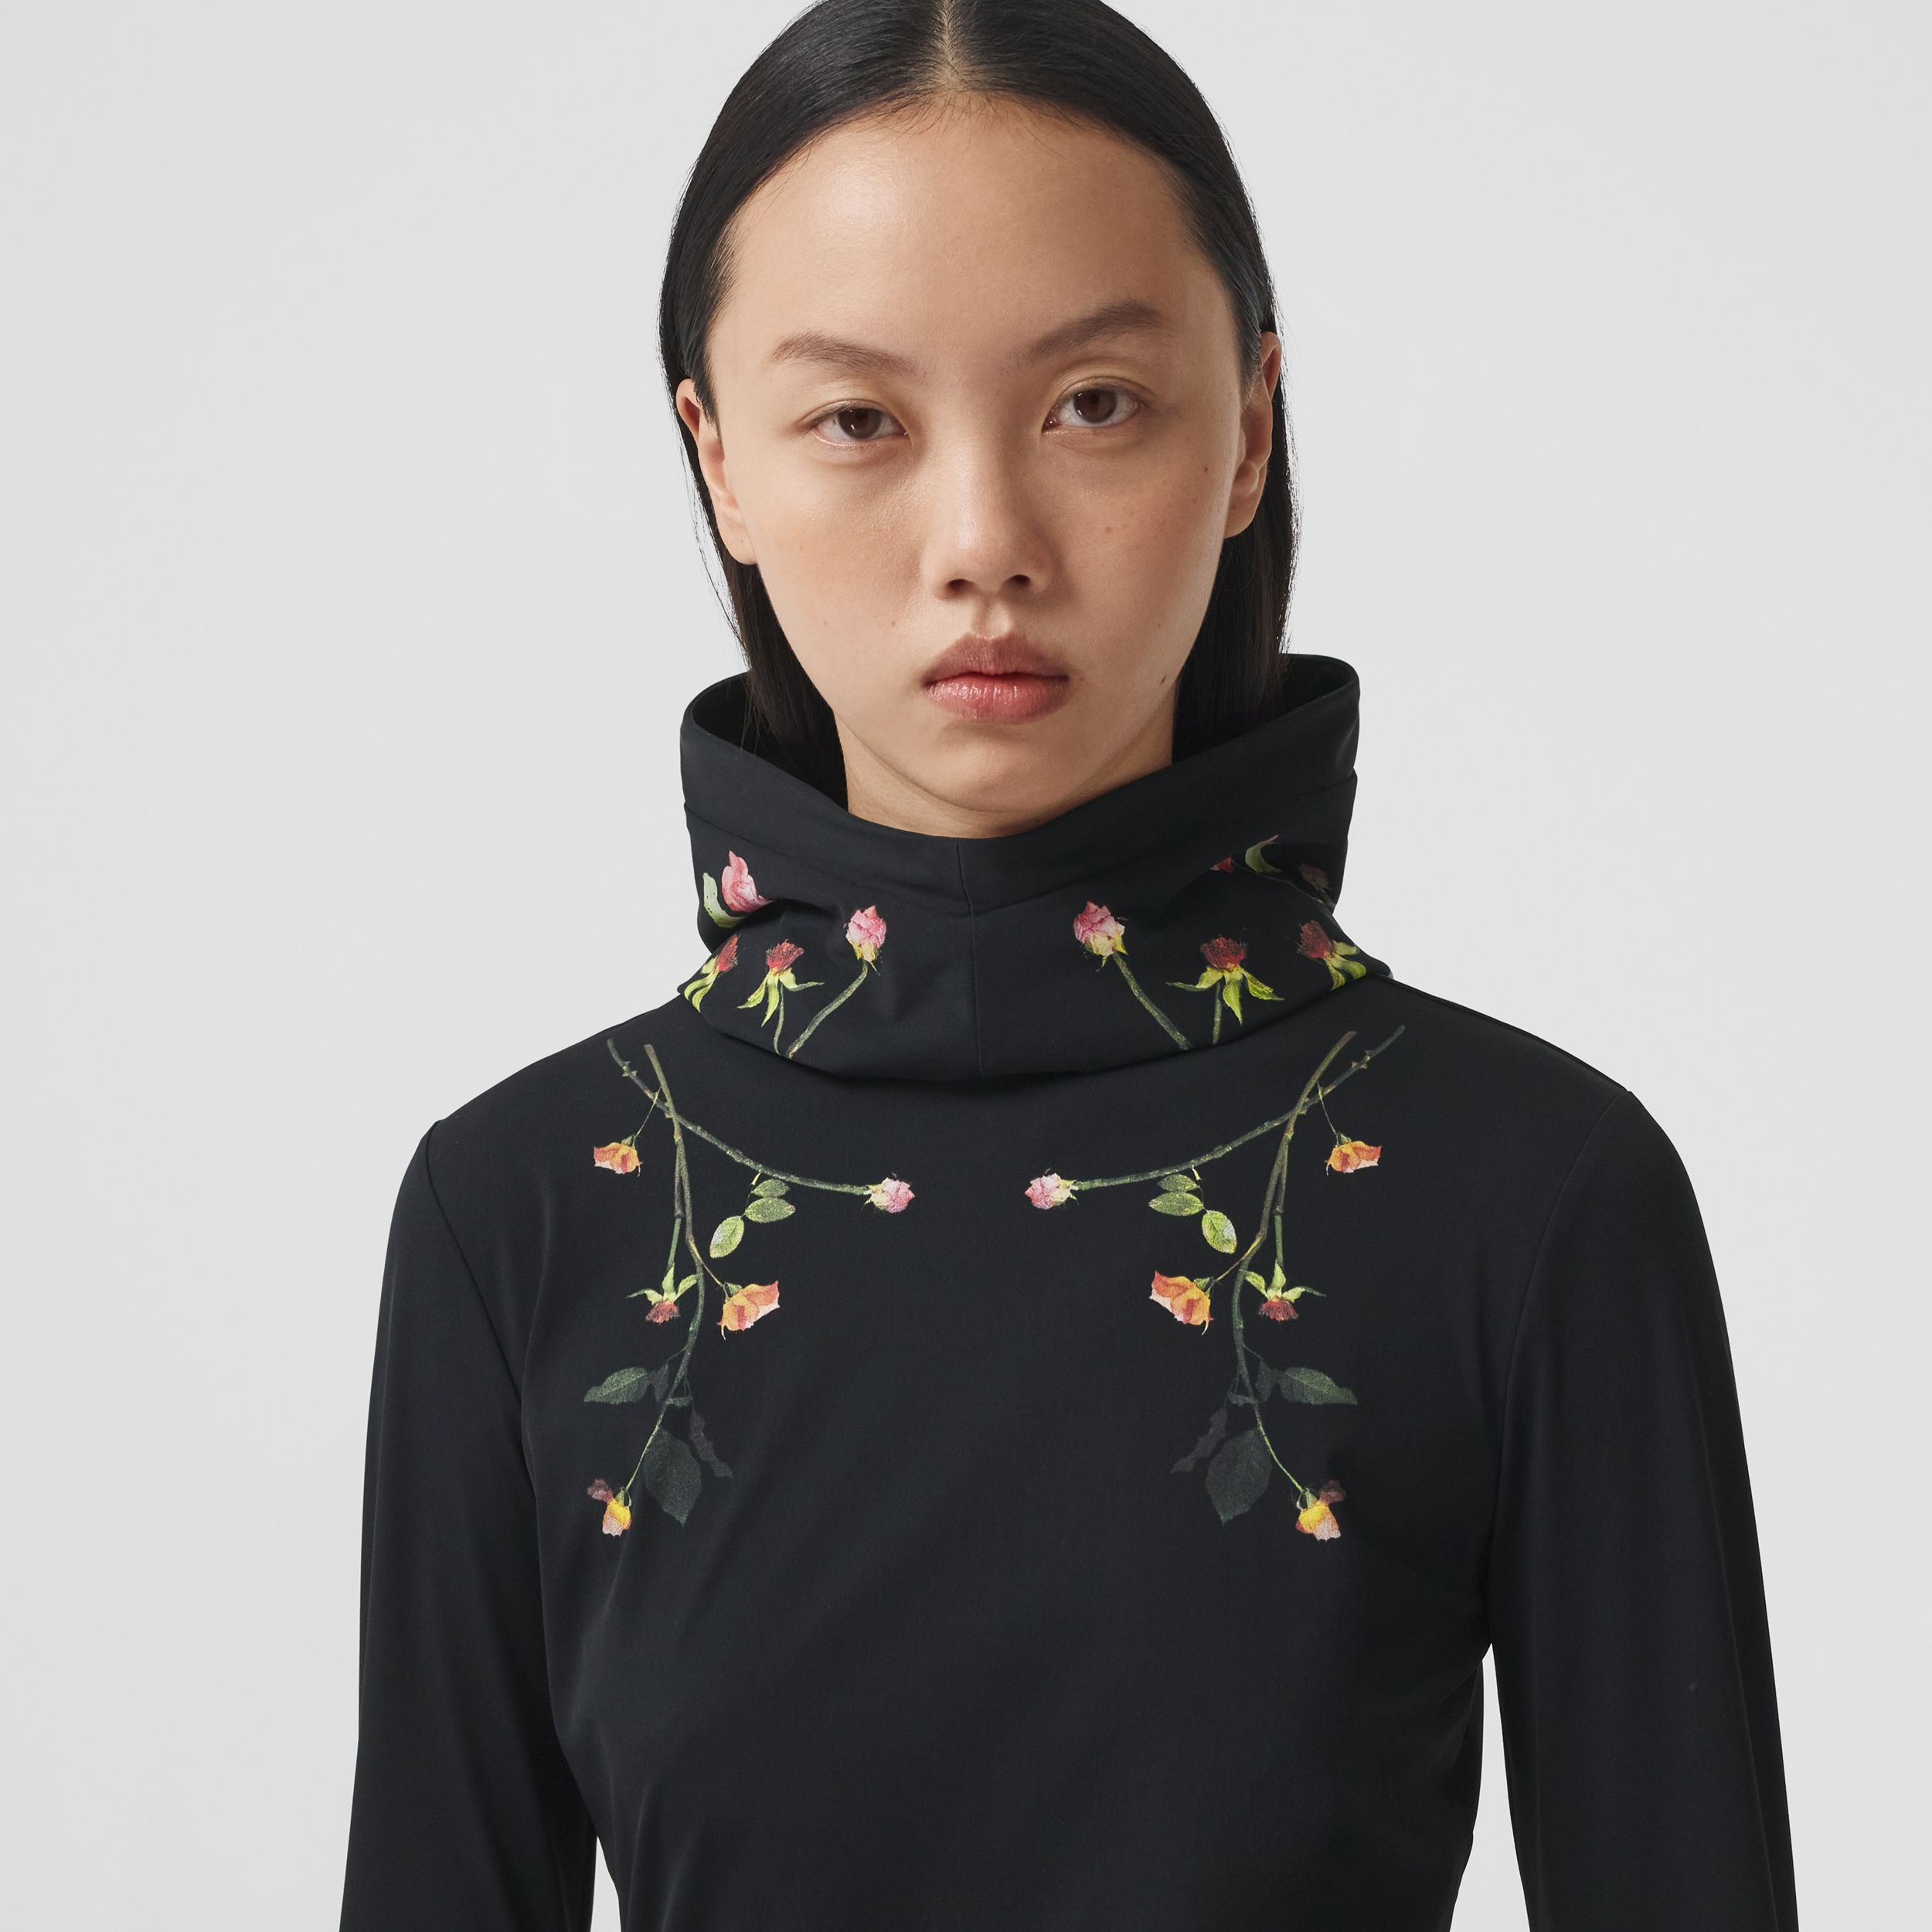 Rose Print Stretch Jersey Hooded Top in Black - Women | Burberry - 2